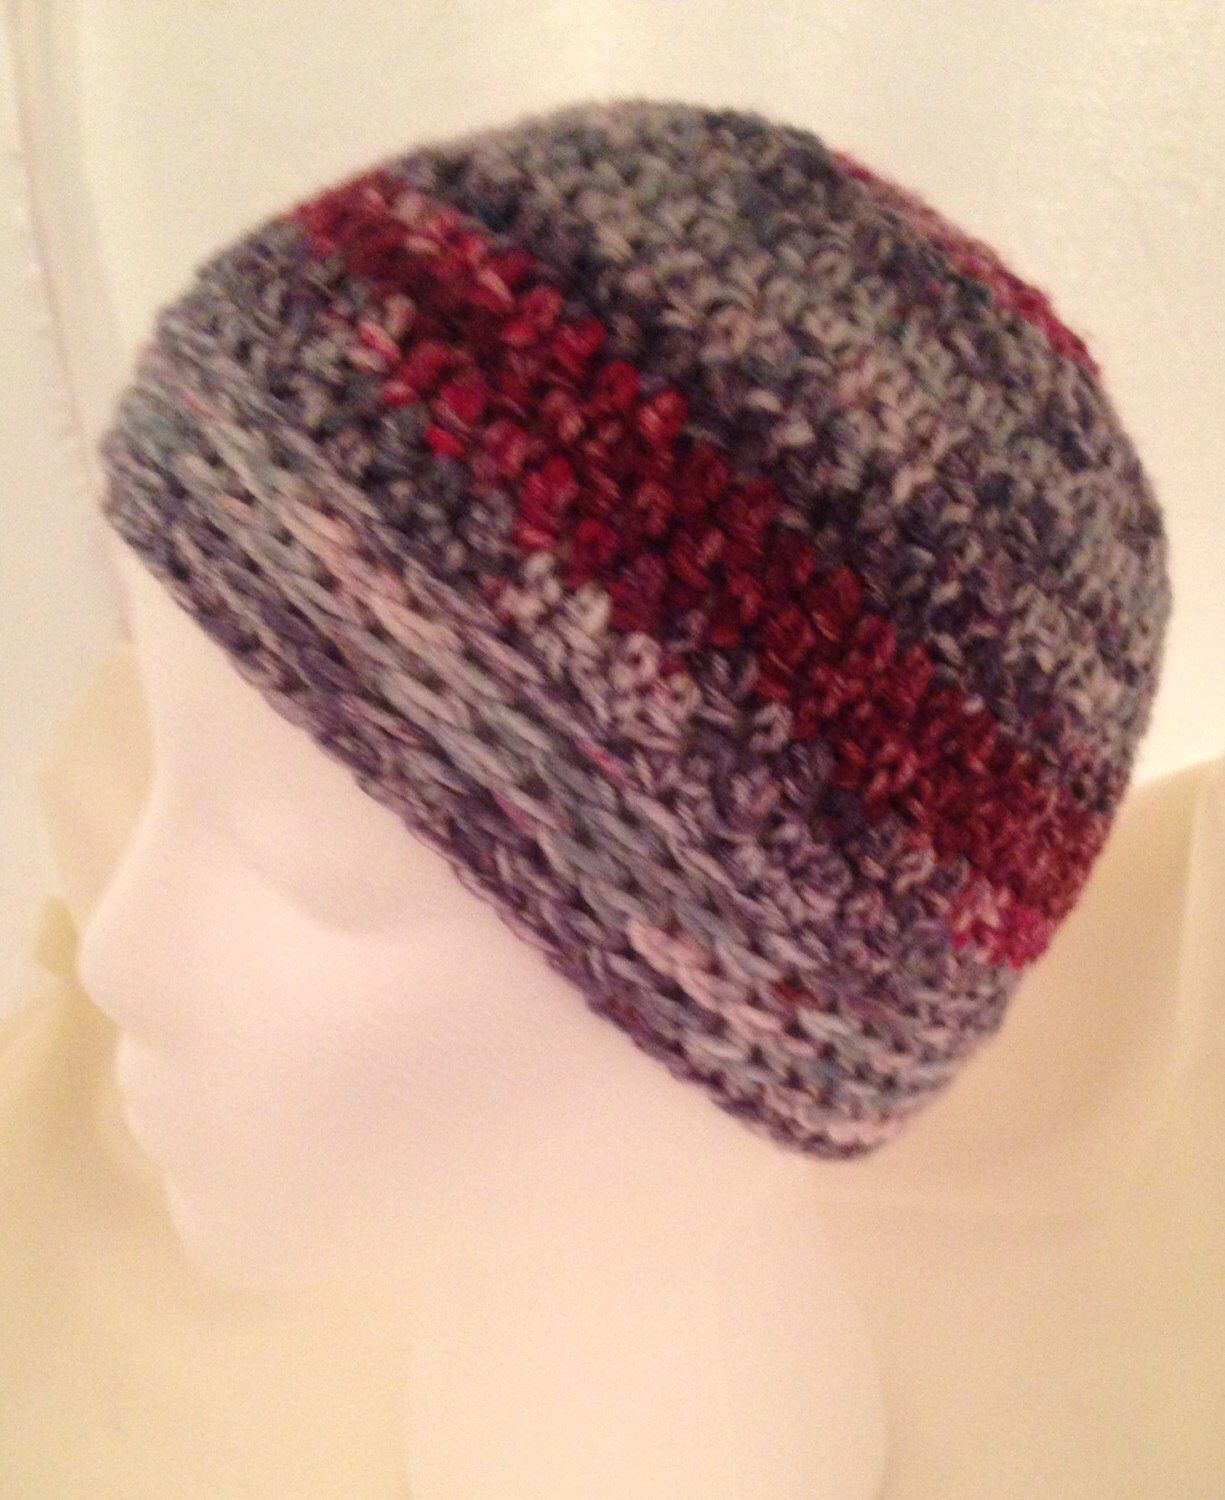 Messy Bun Hat, crochet messy bun hat, crochet skull cap messy bun hat, grey and red messy bun hat #messybunhat Messy Bun Hat, crochet messy bun hat, crochet skull cap messy bun hat, grey and red messy bun hat  #crochetskullcap #hats #messybunhat Messy Bun Hat, crochet messy bun hat, crochet skull cap messy bun hat, grey and red messy bun hat #messybunhat Messy Bun Hat, crochet messy bun hat, crochet skull cap messy bun hat, grey and red messy bun hat  #crochetskullcap #hats #messybunhat Messy Bu #messybunhat